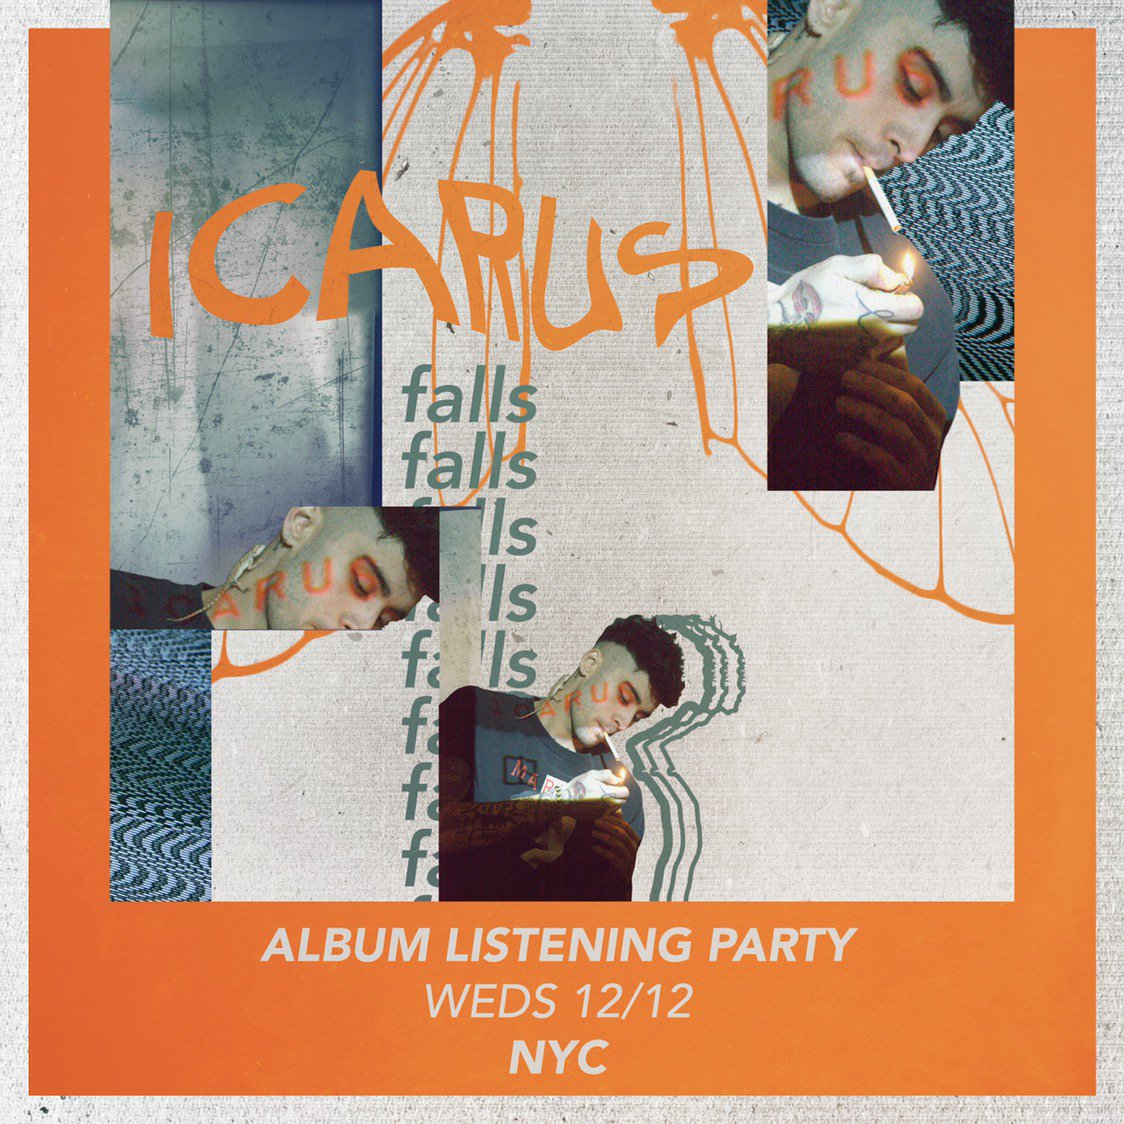 NYC album listening party this Wednesday: https://t.co/KLSimACMNM  Limited tickets available #ICARUSFALLS 💿 🎧